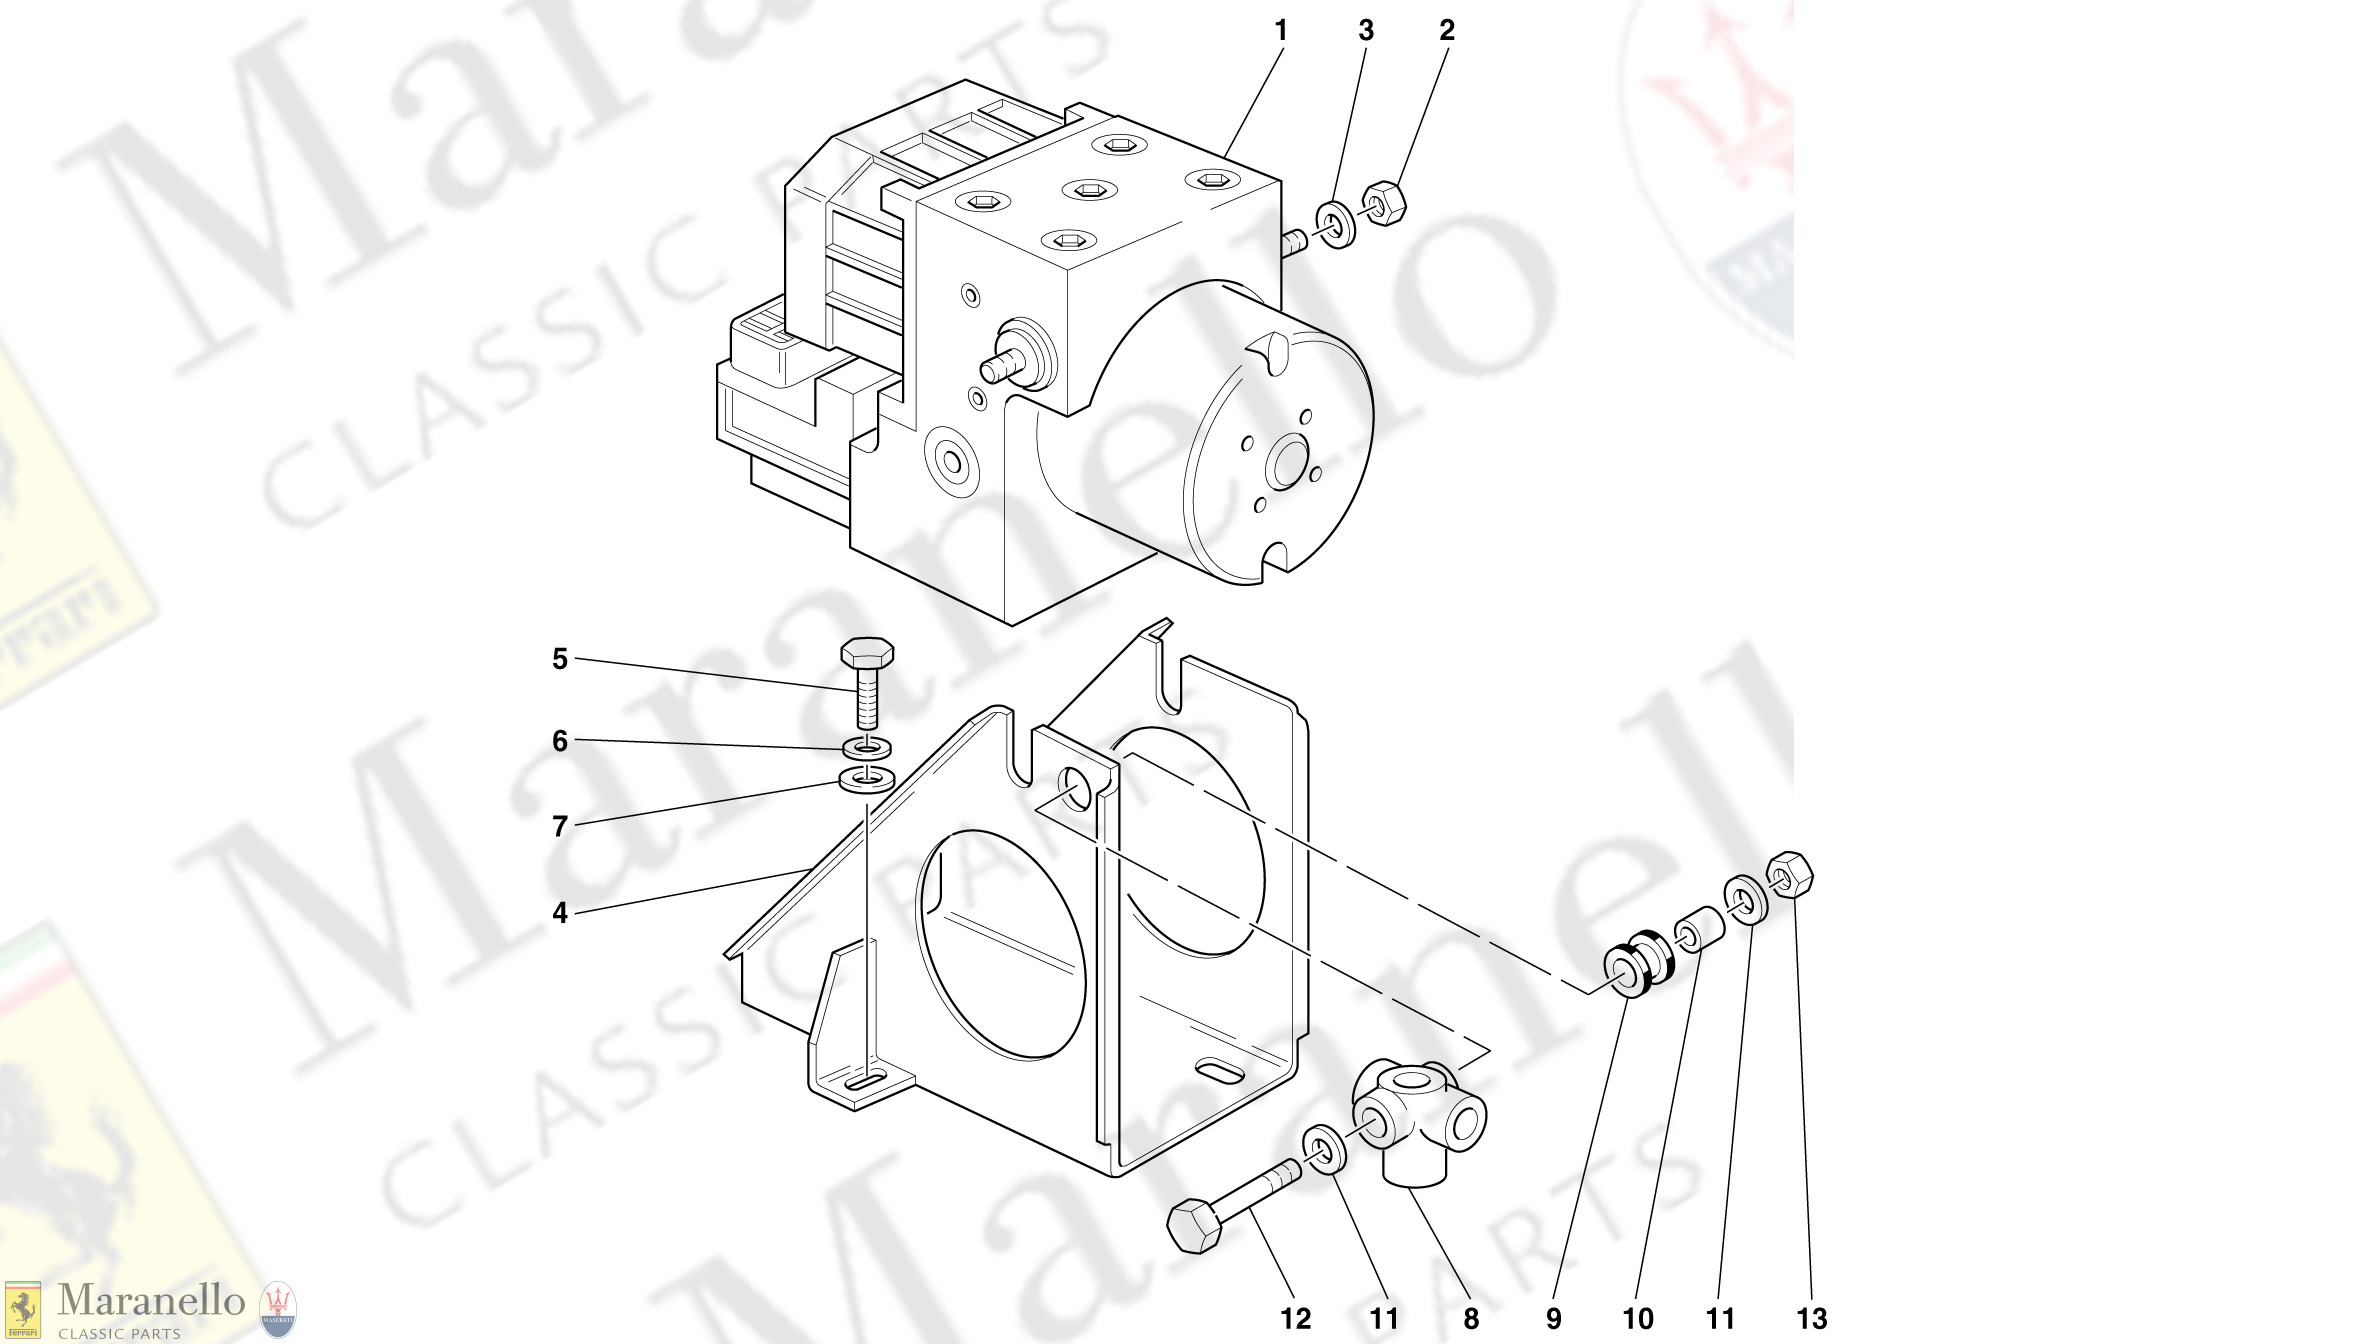 040 - Hydraulic System For Abs Bosch -Valid For Abs Bosch And 355 F1 Cars-